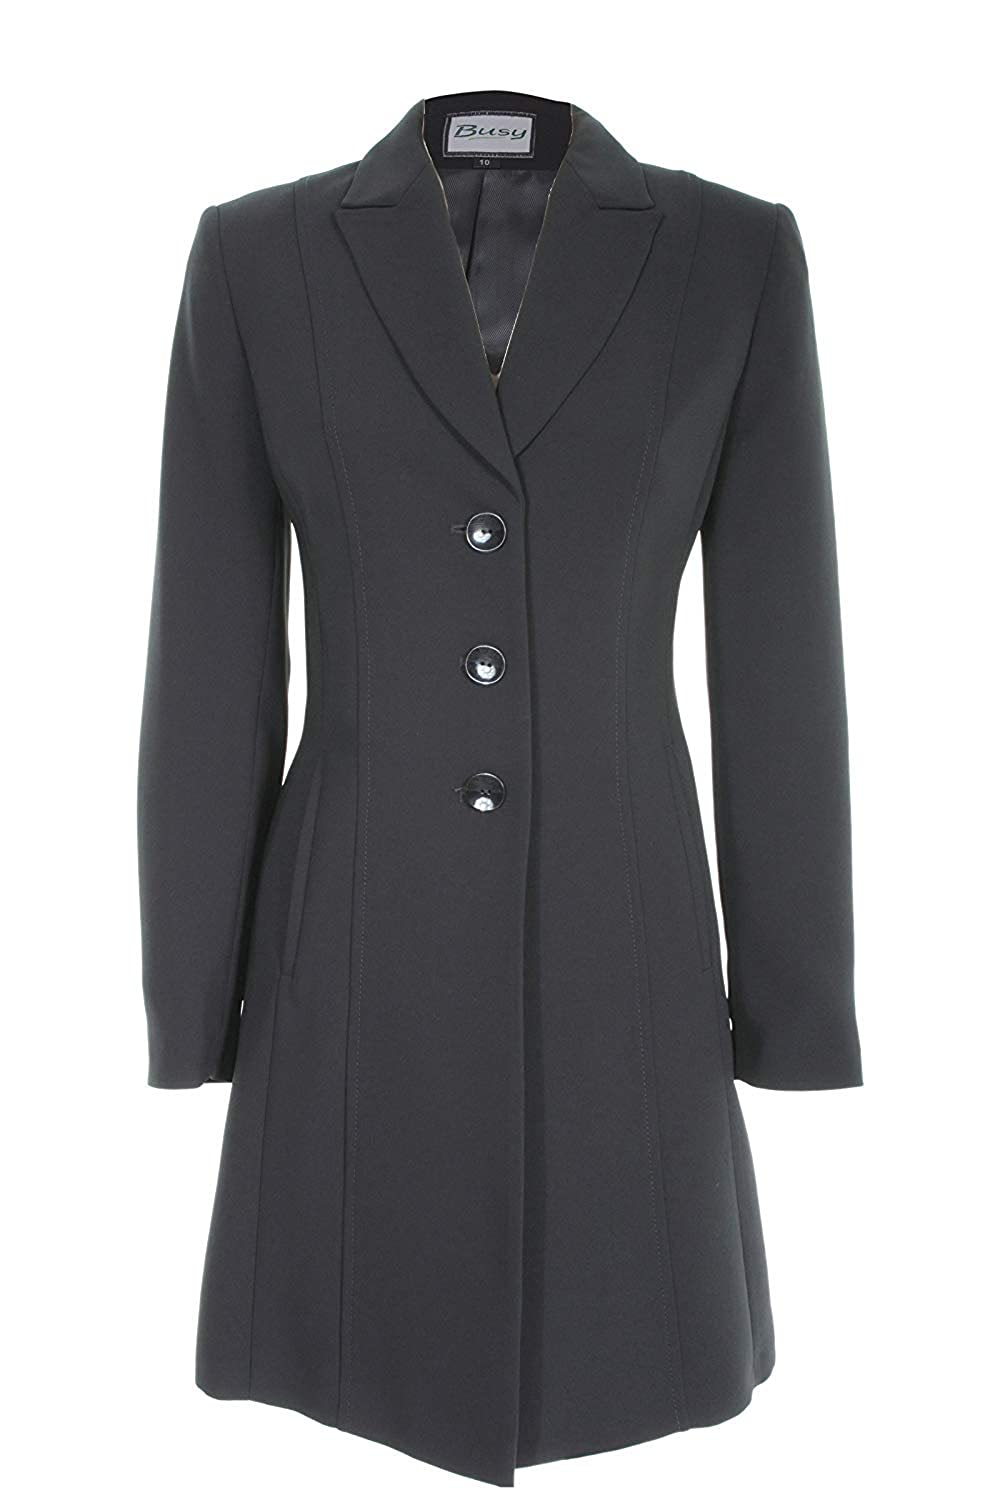 Busy Clothing Womens Black Long Suit Jacket